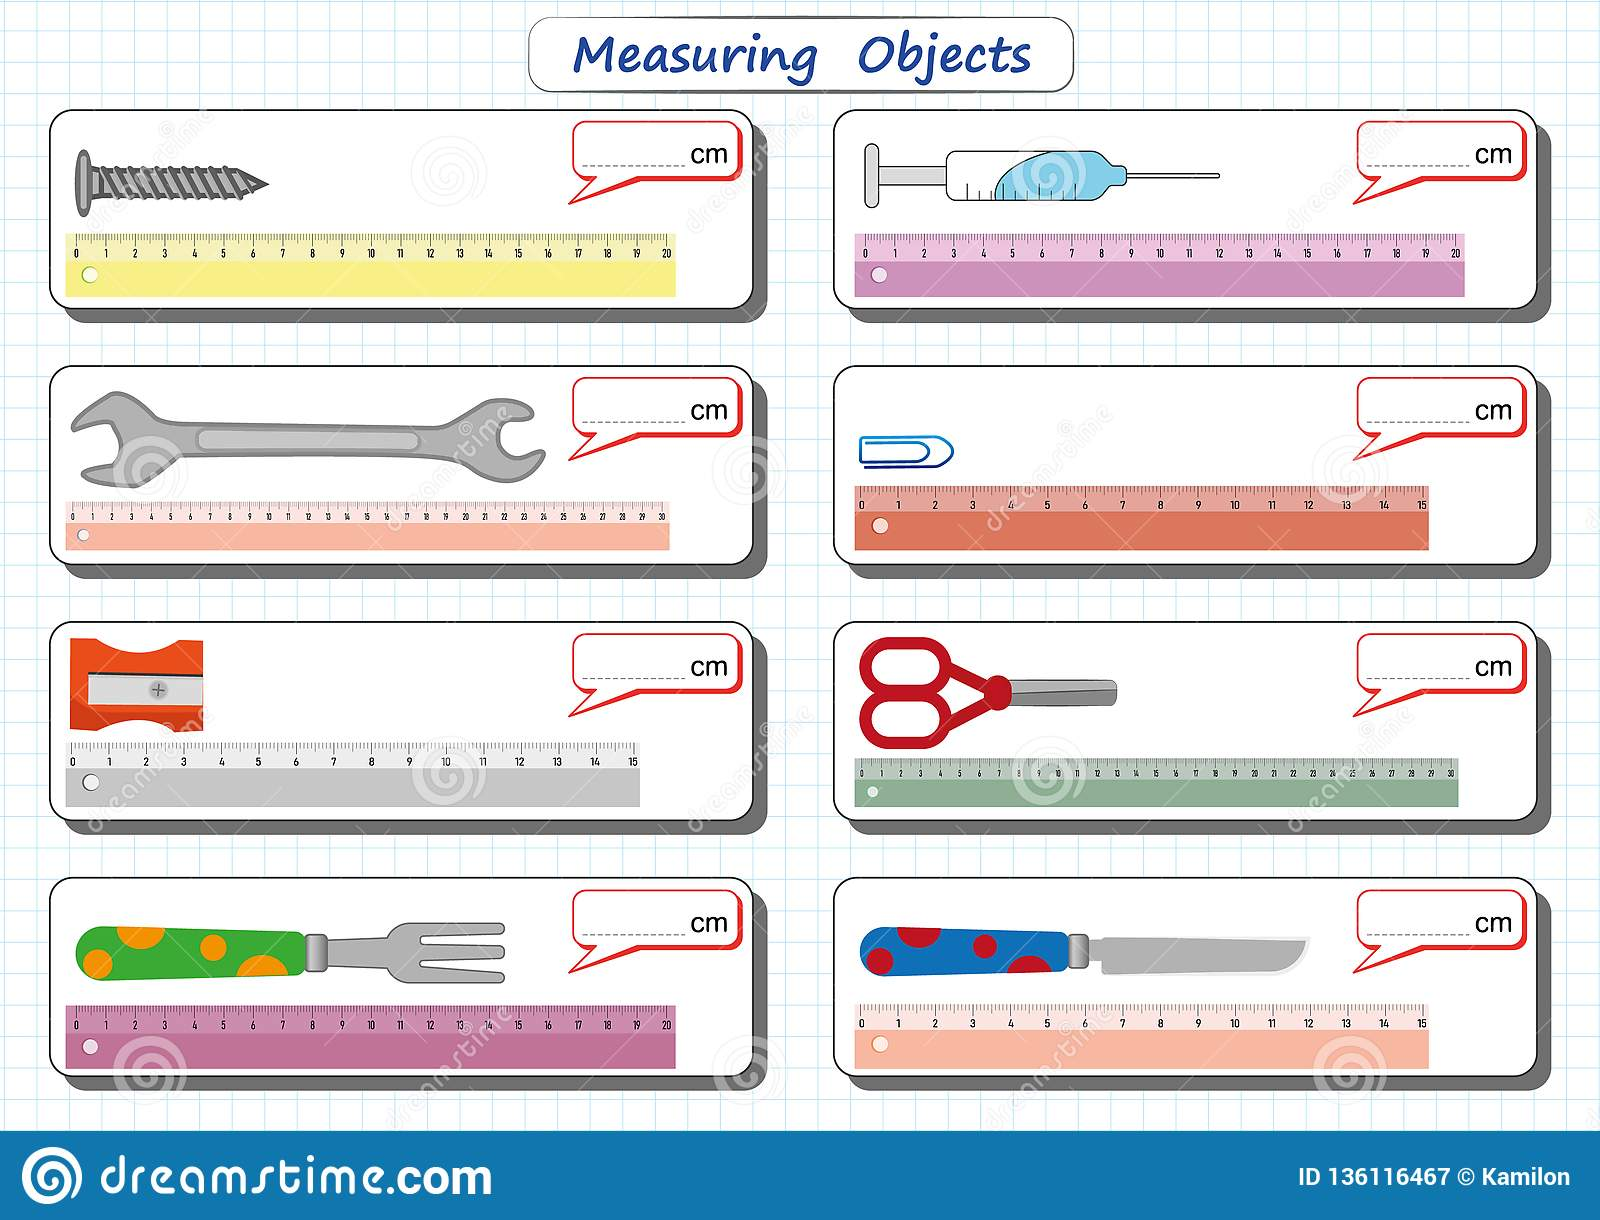 Measuring Solids Worksheet